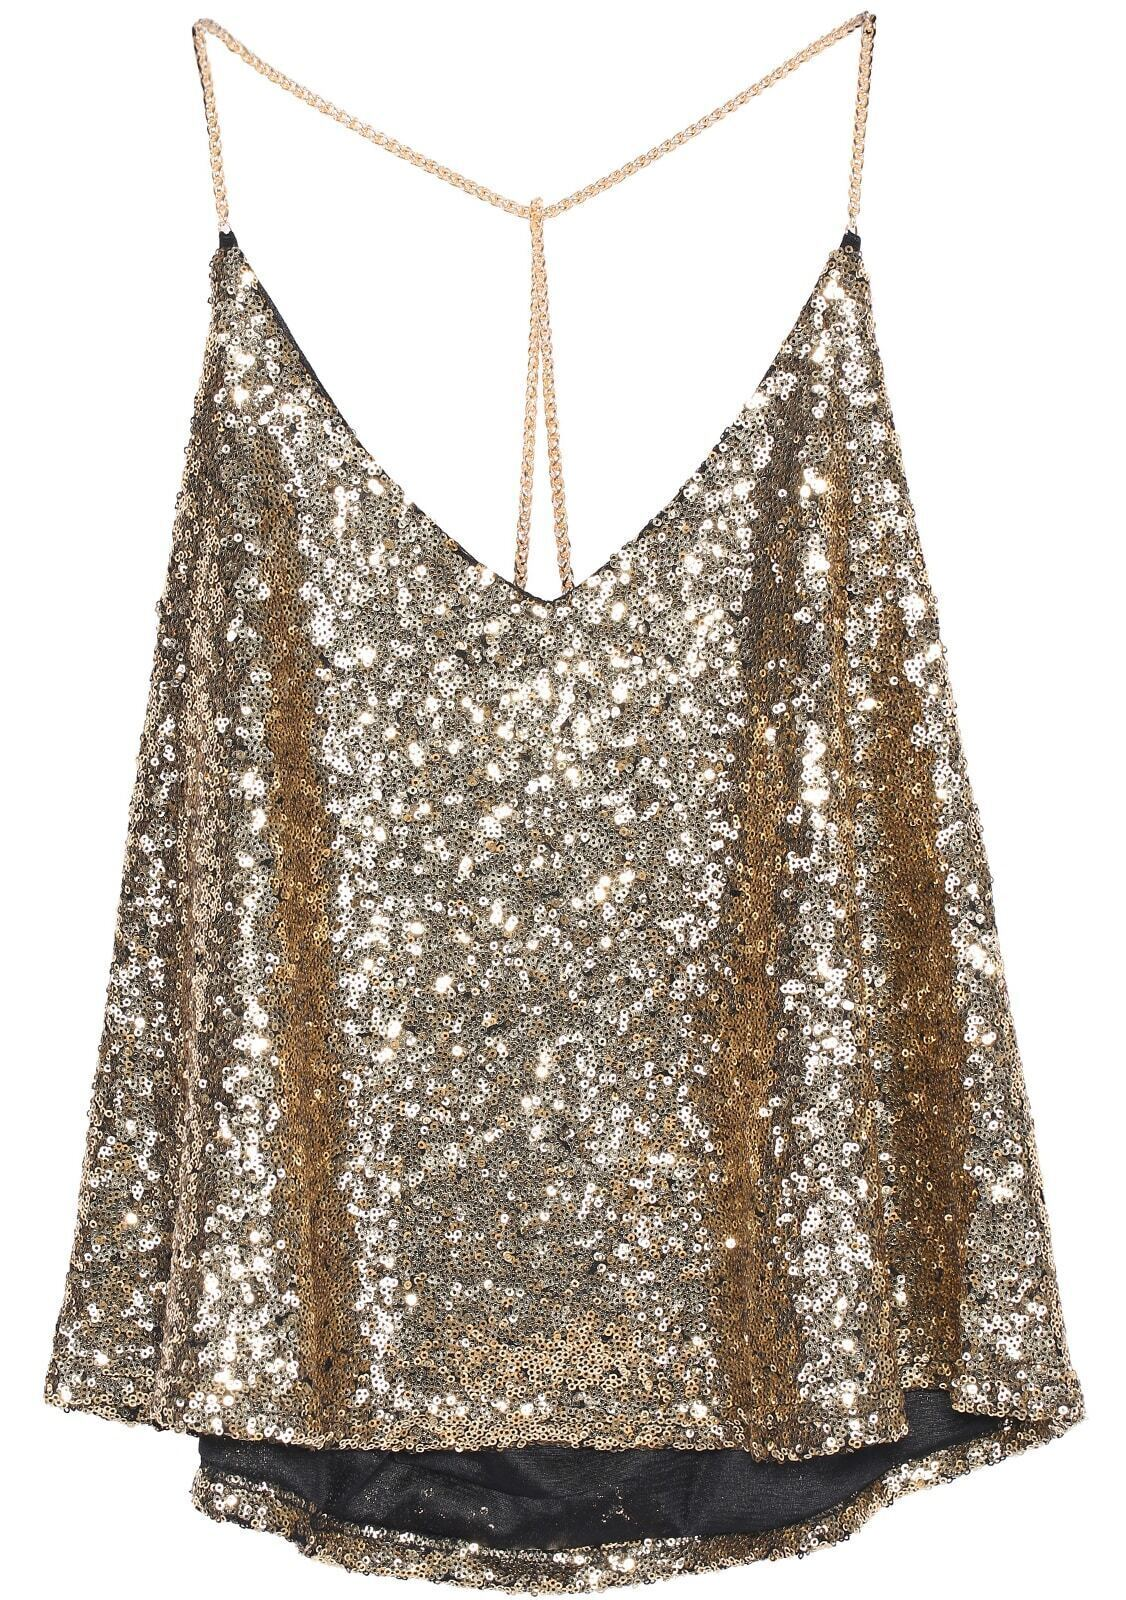 Related image sequins dresses